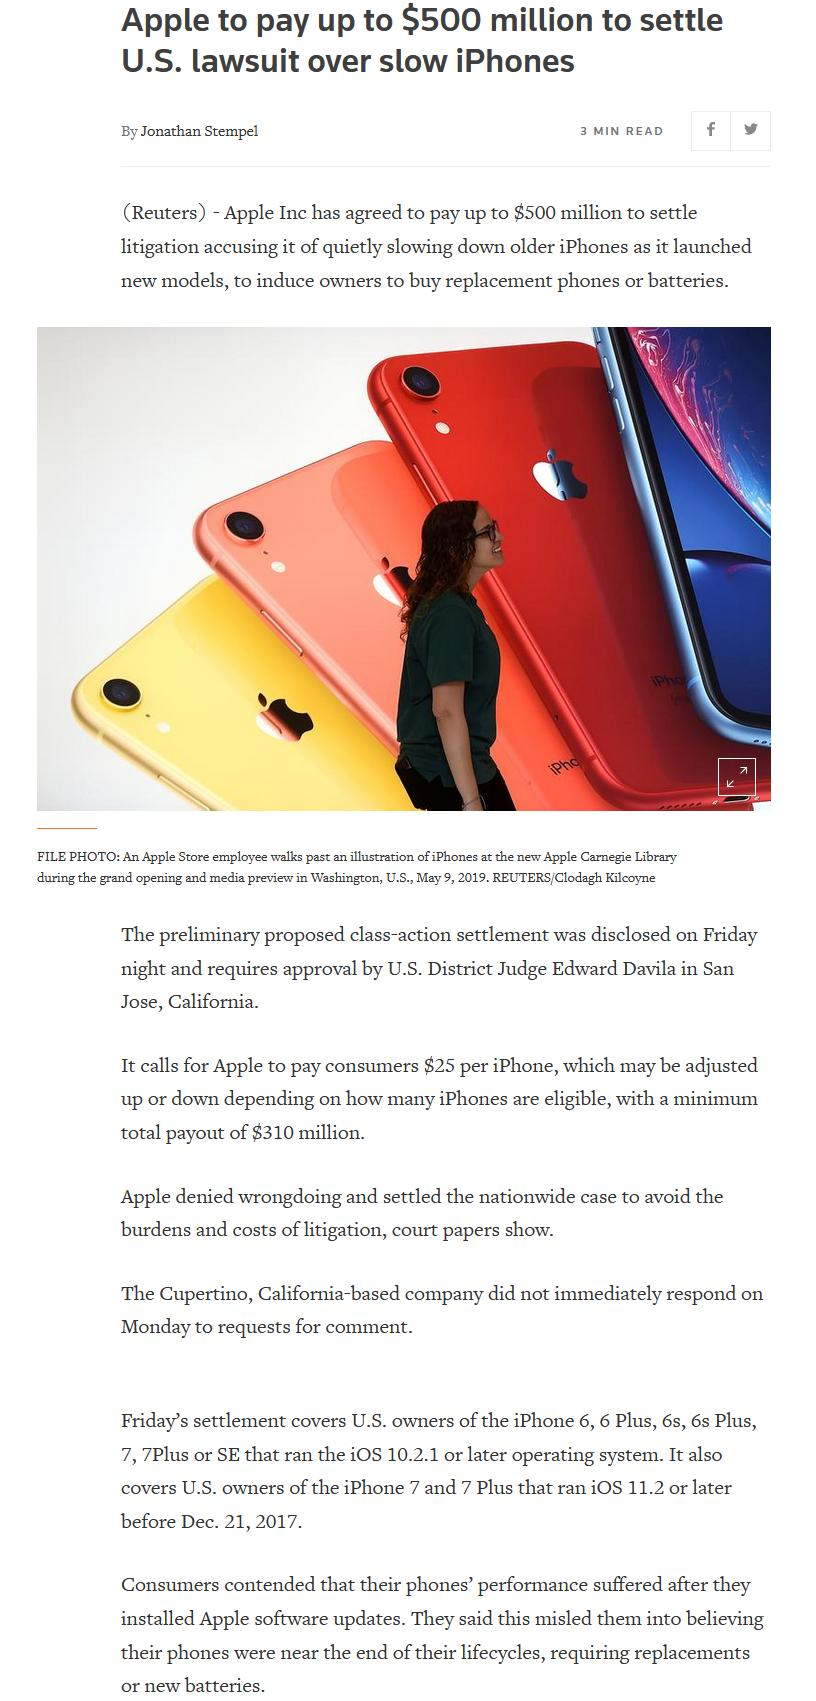 Apple to pay up to $500 million to settle U.S. lawsuit over slow iPhones _ Reute